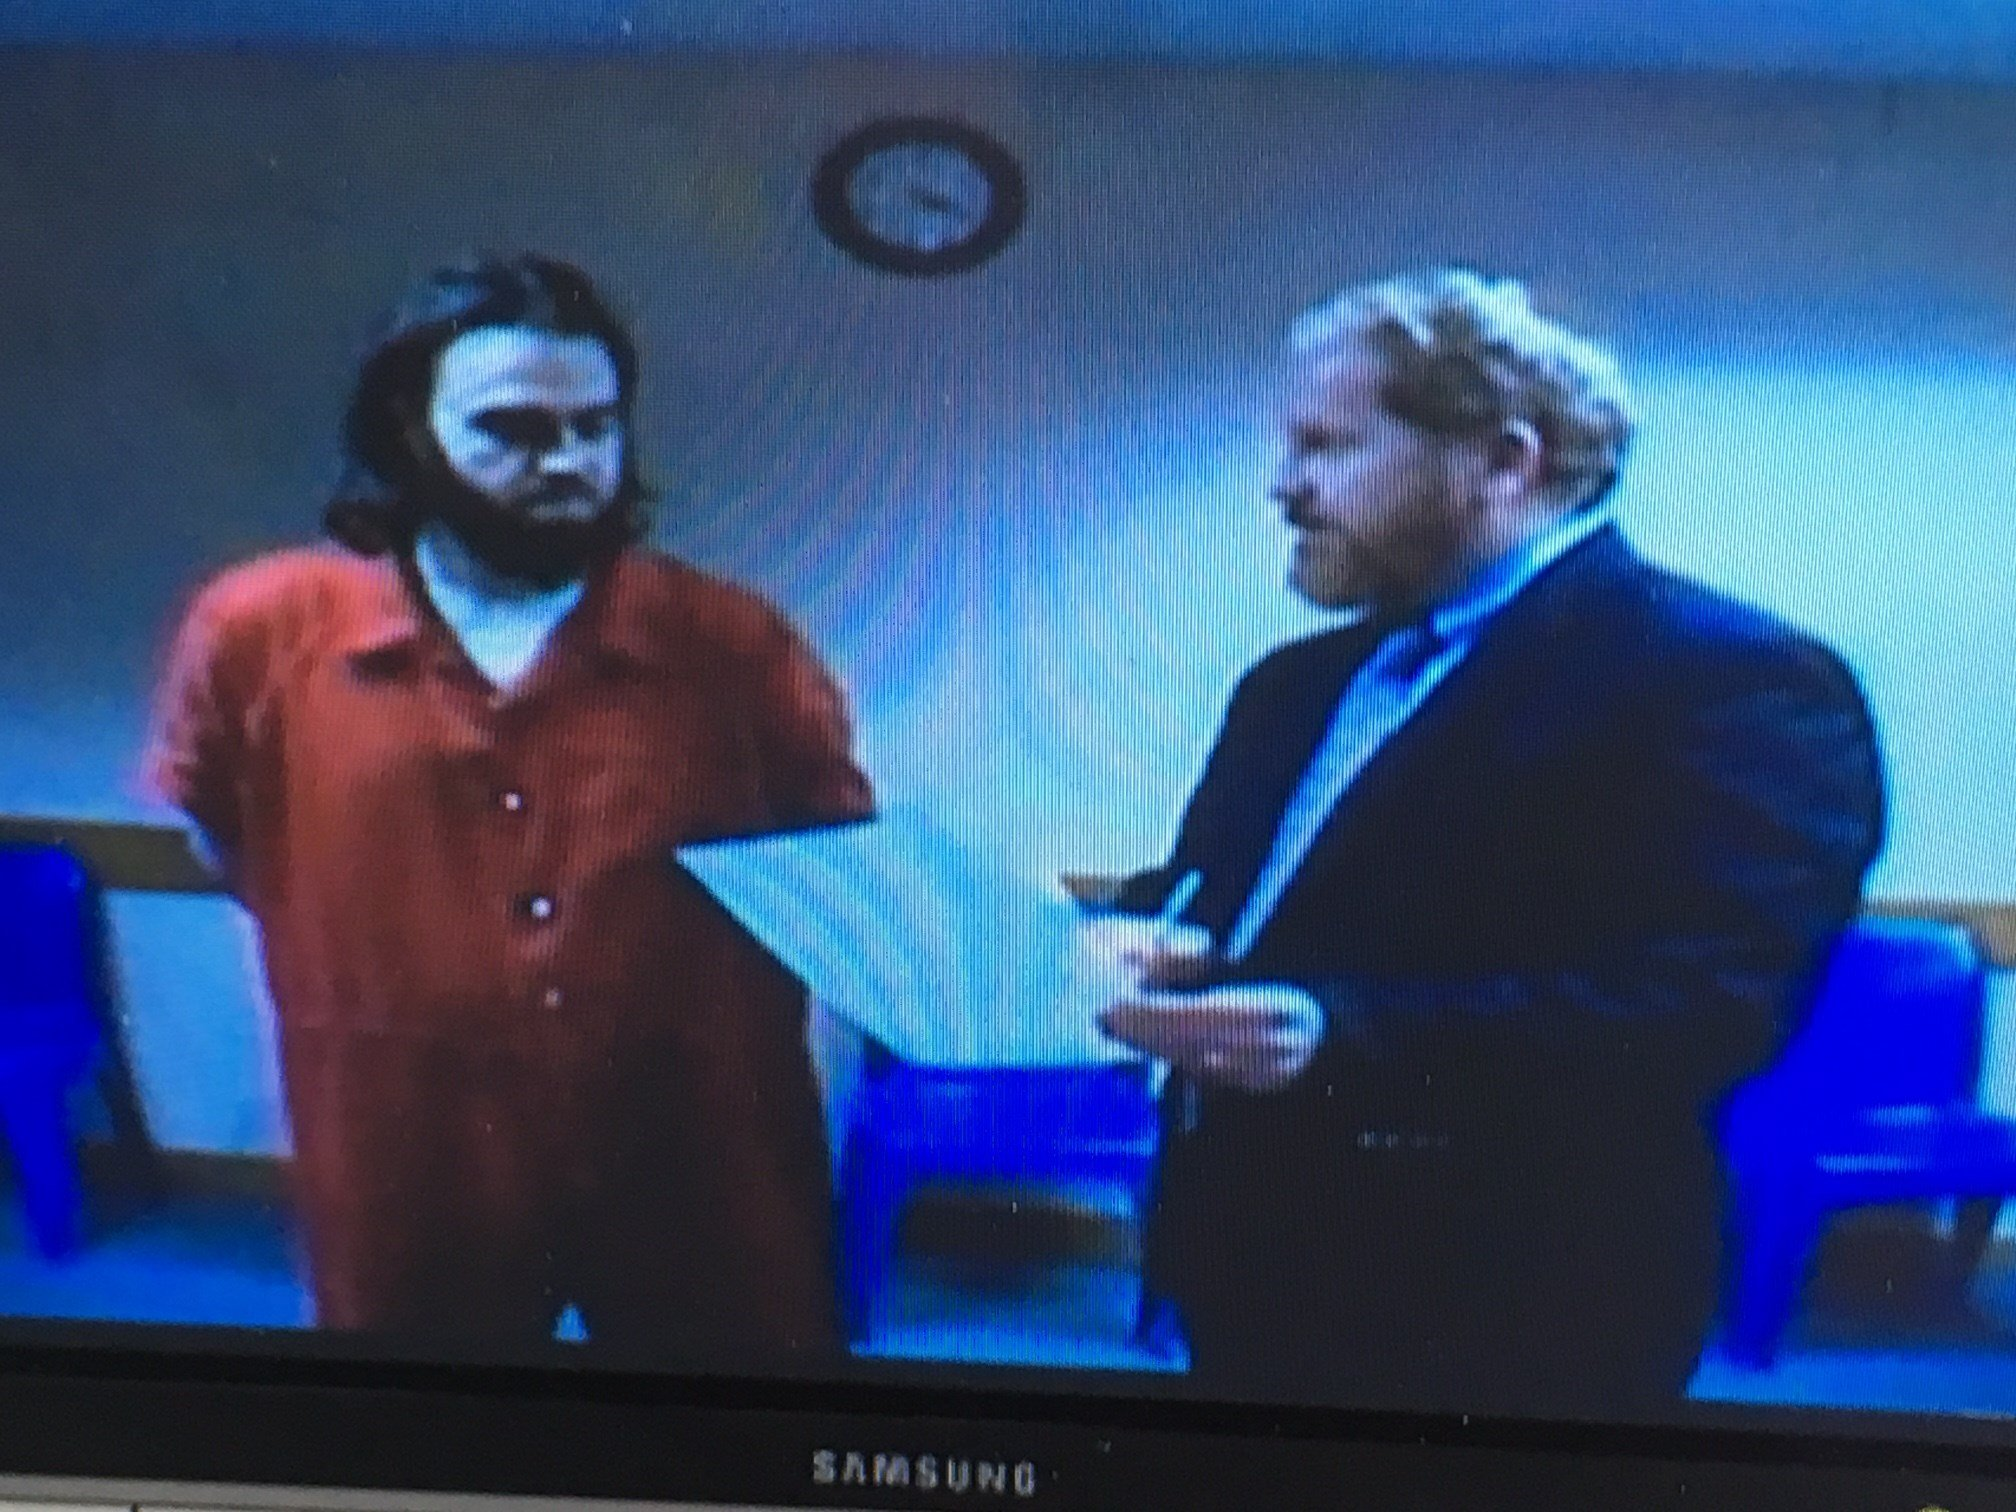 Beckner, pictured left, in court for his arraignment Friday.